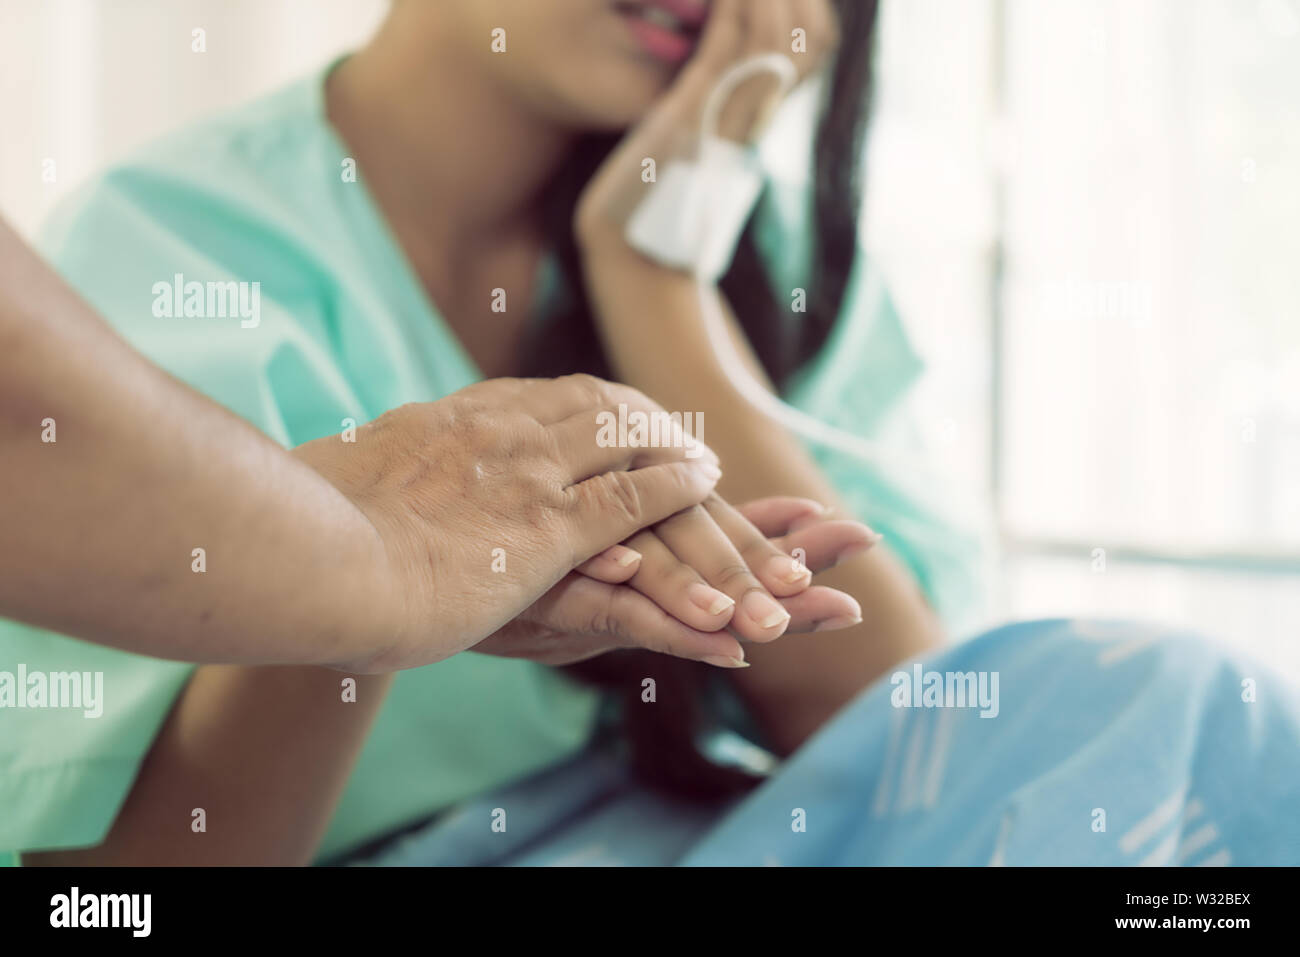 Mother hands holding her daughter patient hand sitting at the desk for encouragement, empathy, cheering and support while medical examination. Bad new - Stock Image